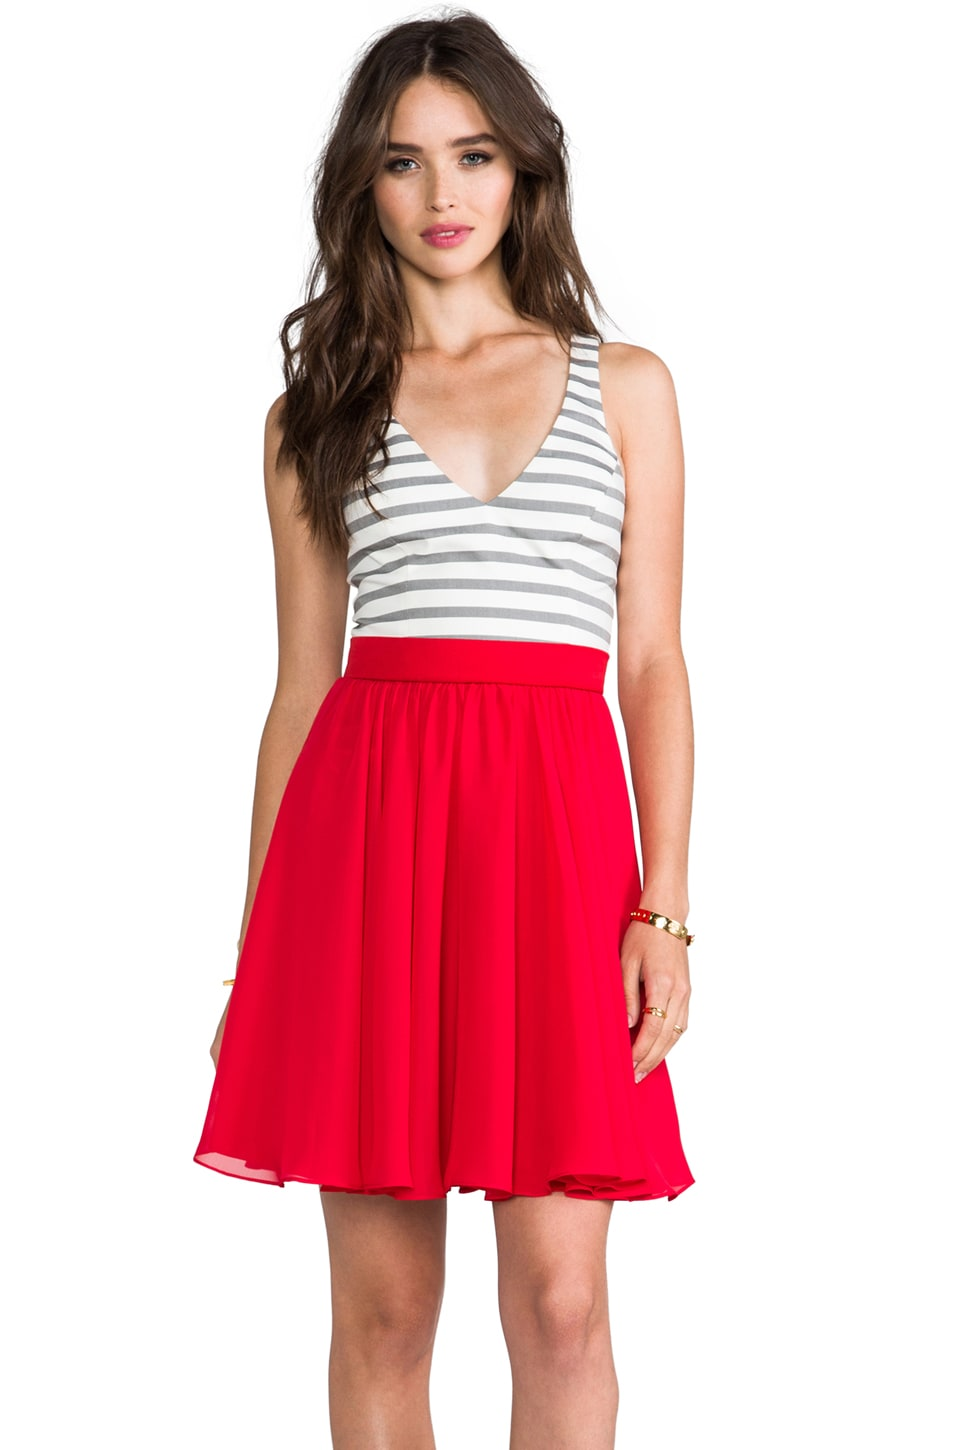 Black Halo Francis Mini in Cabana Stripe & Red